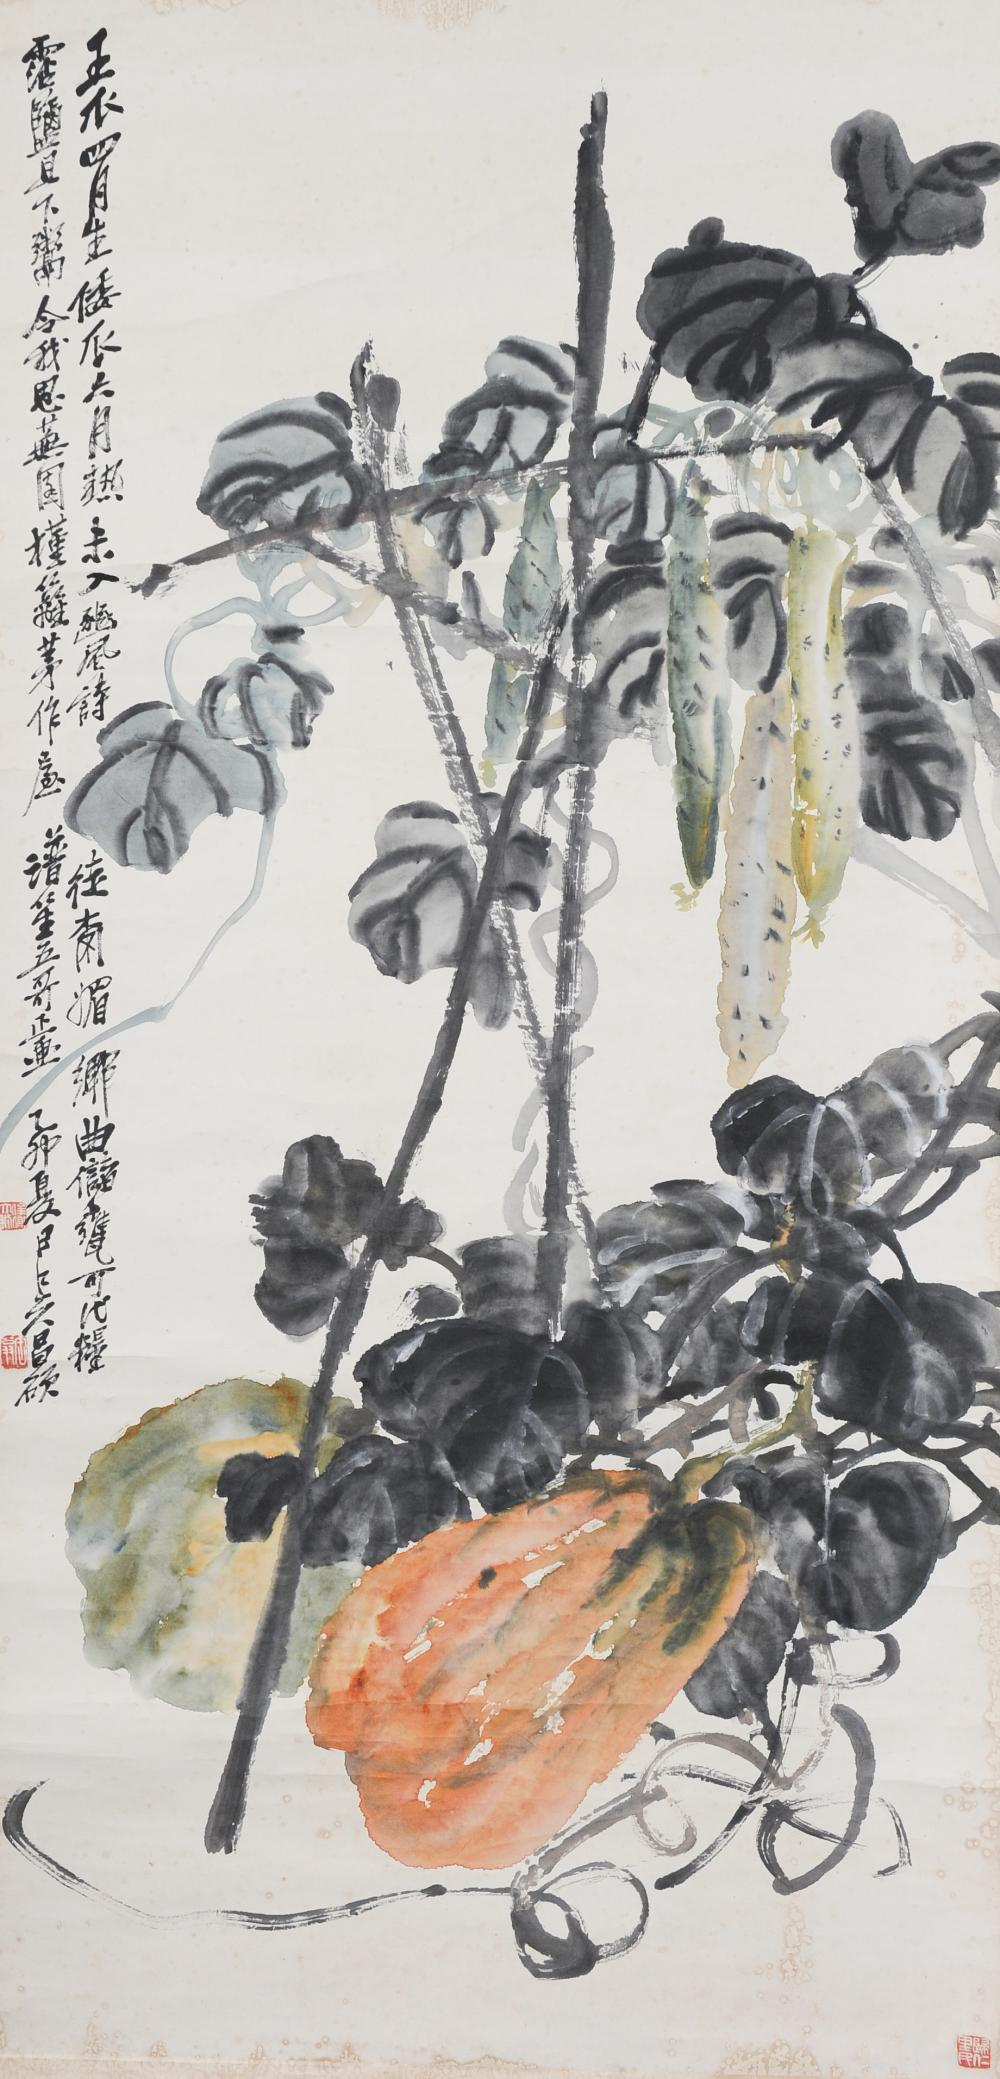 PAINTING OF PUMPKINS BY WU CHANGSHUO, 1915